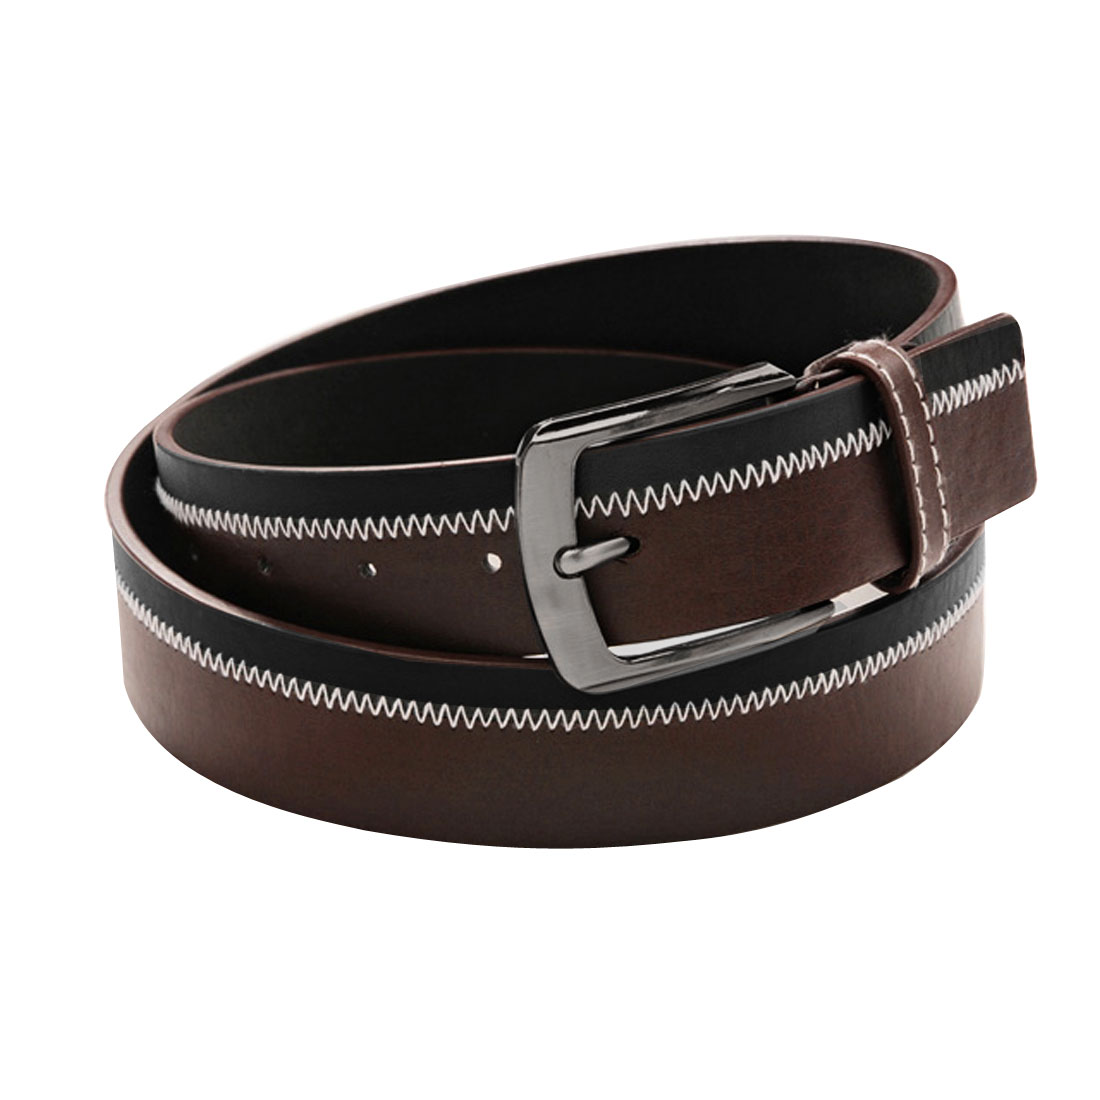 Mens Adjust 46 inches Length Fashion Coffee Color Black Waistbelt